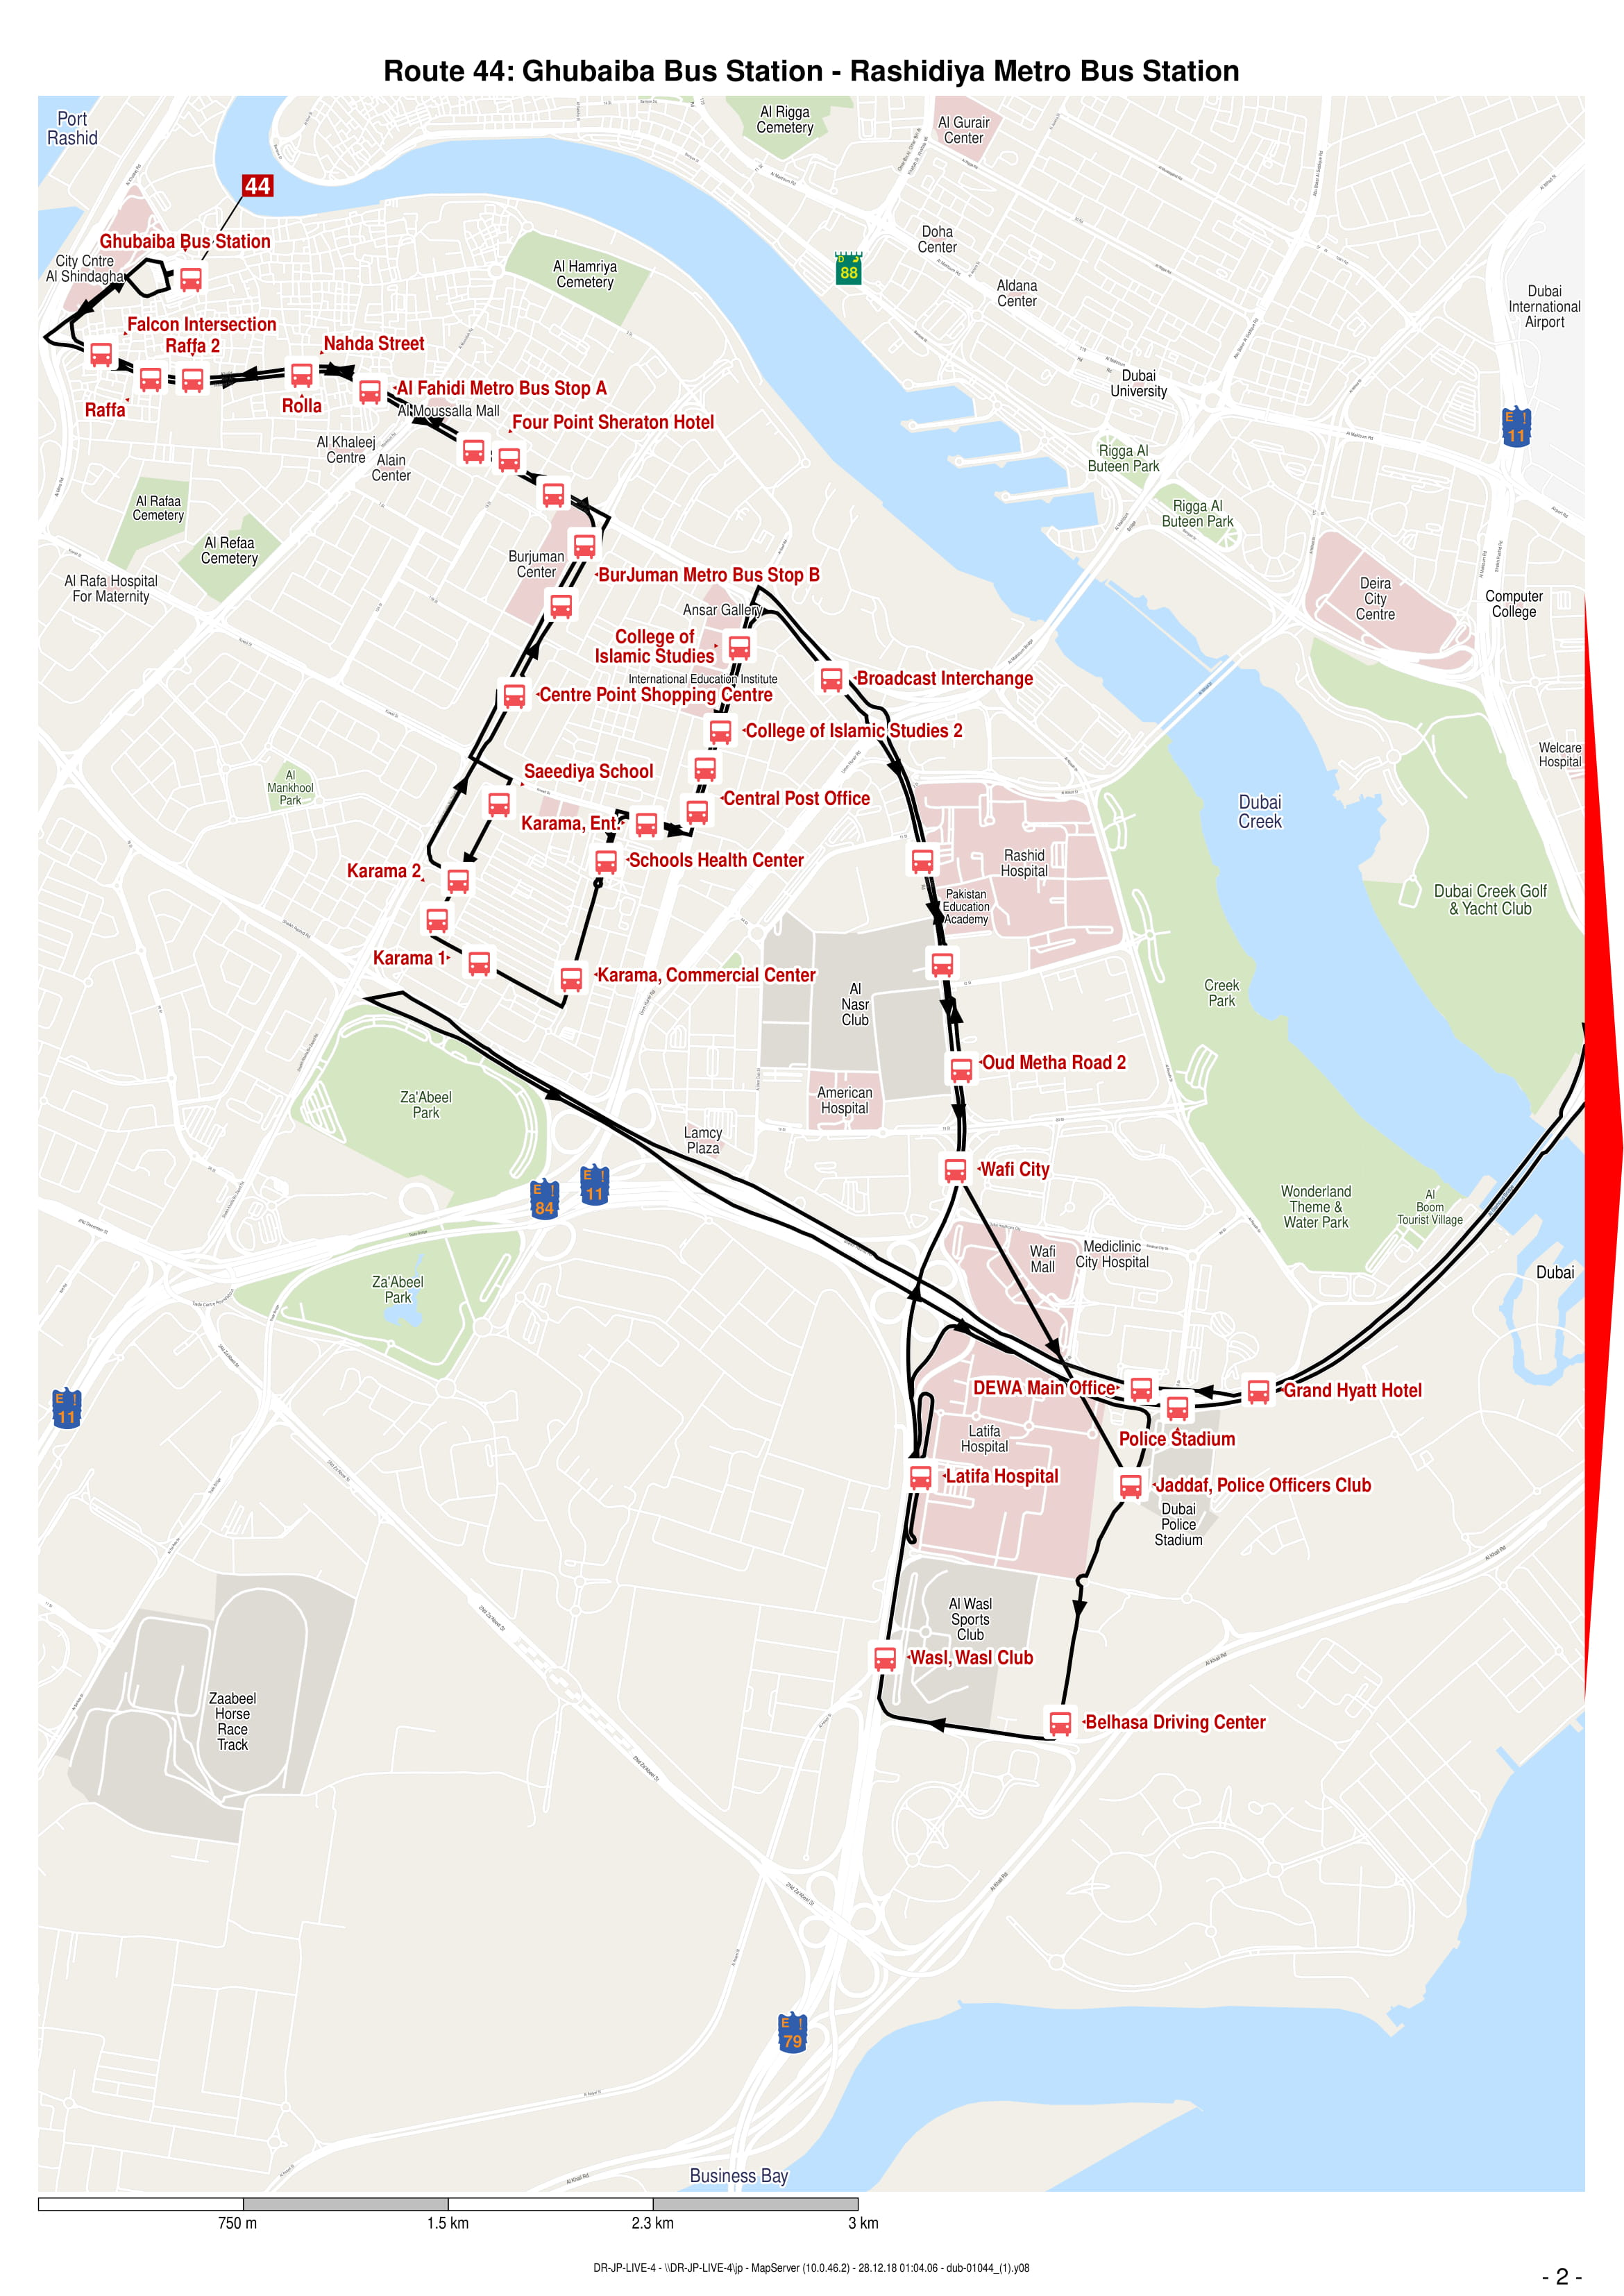 S44 Bus Time >> 44 Bus Route In Dubai Time Schedule Stops And Maps Your Dubai Guide